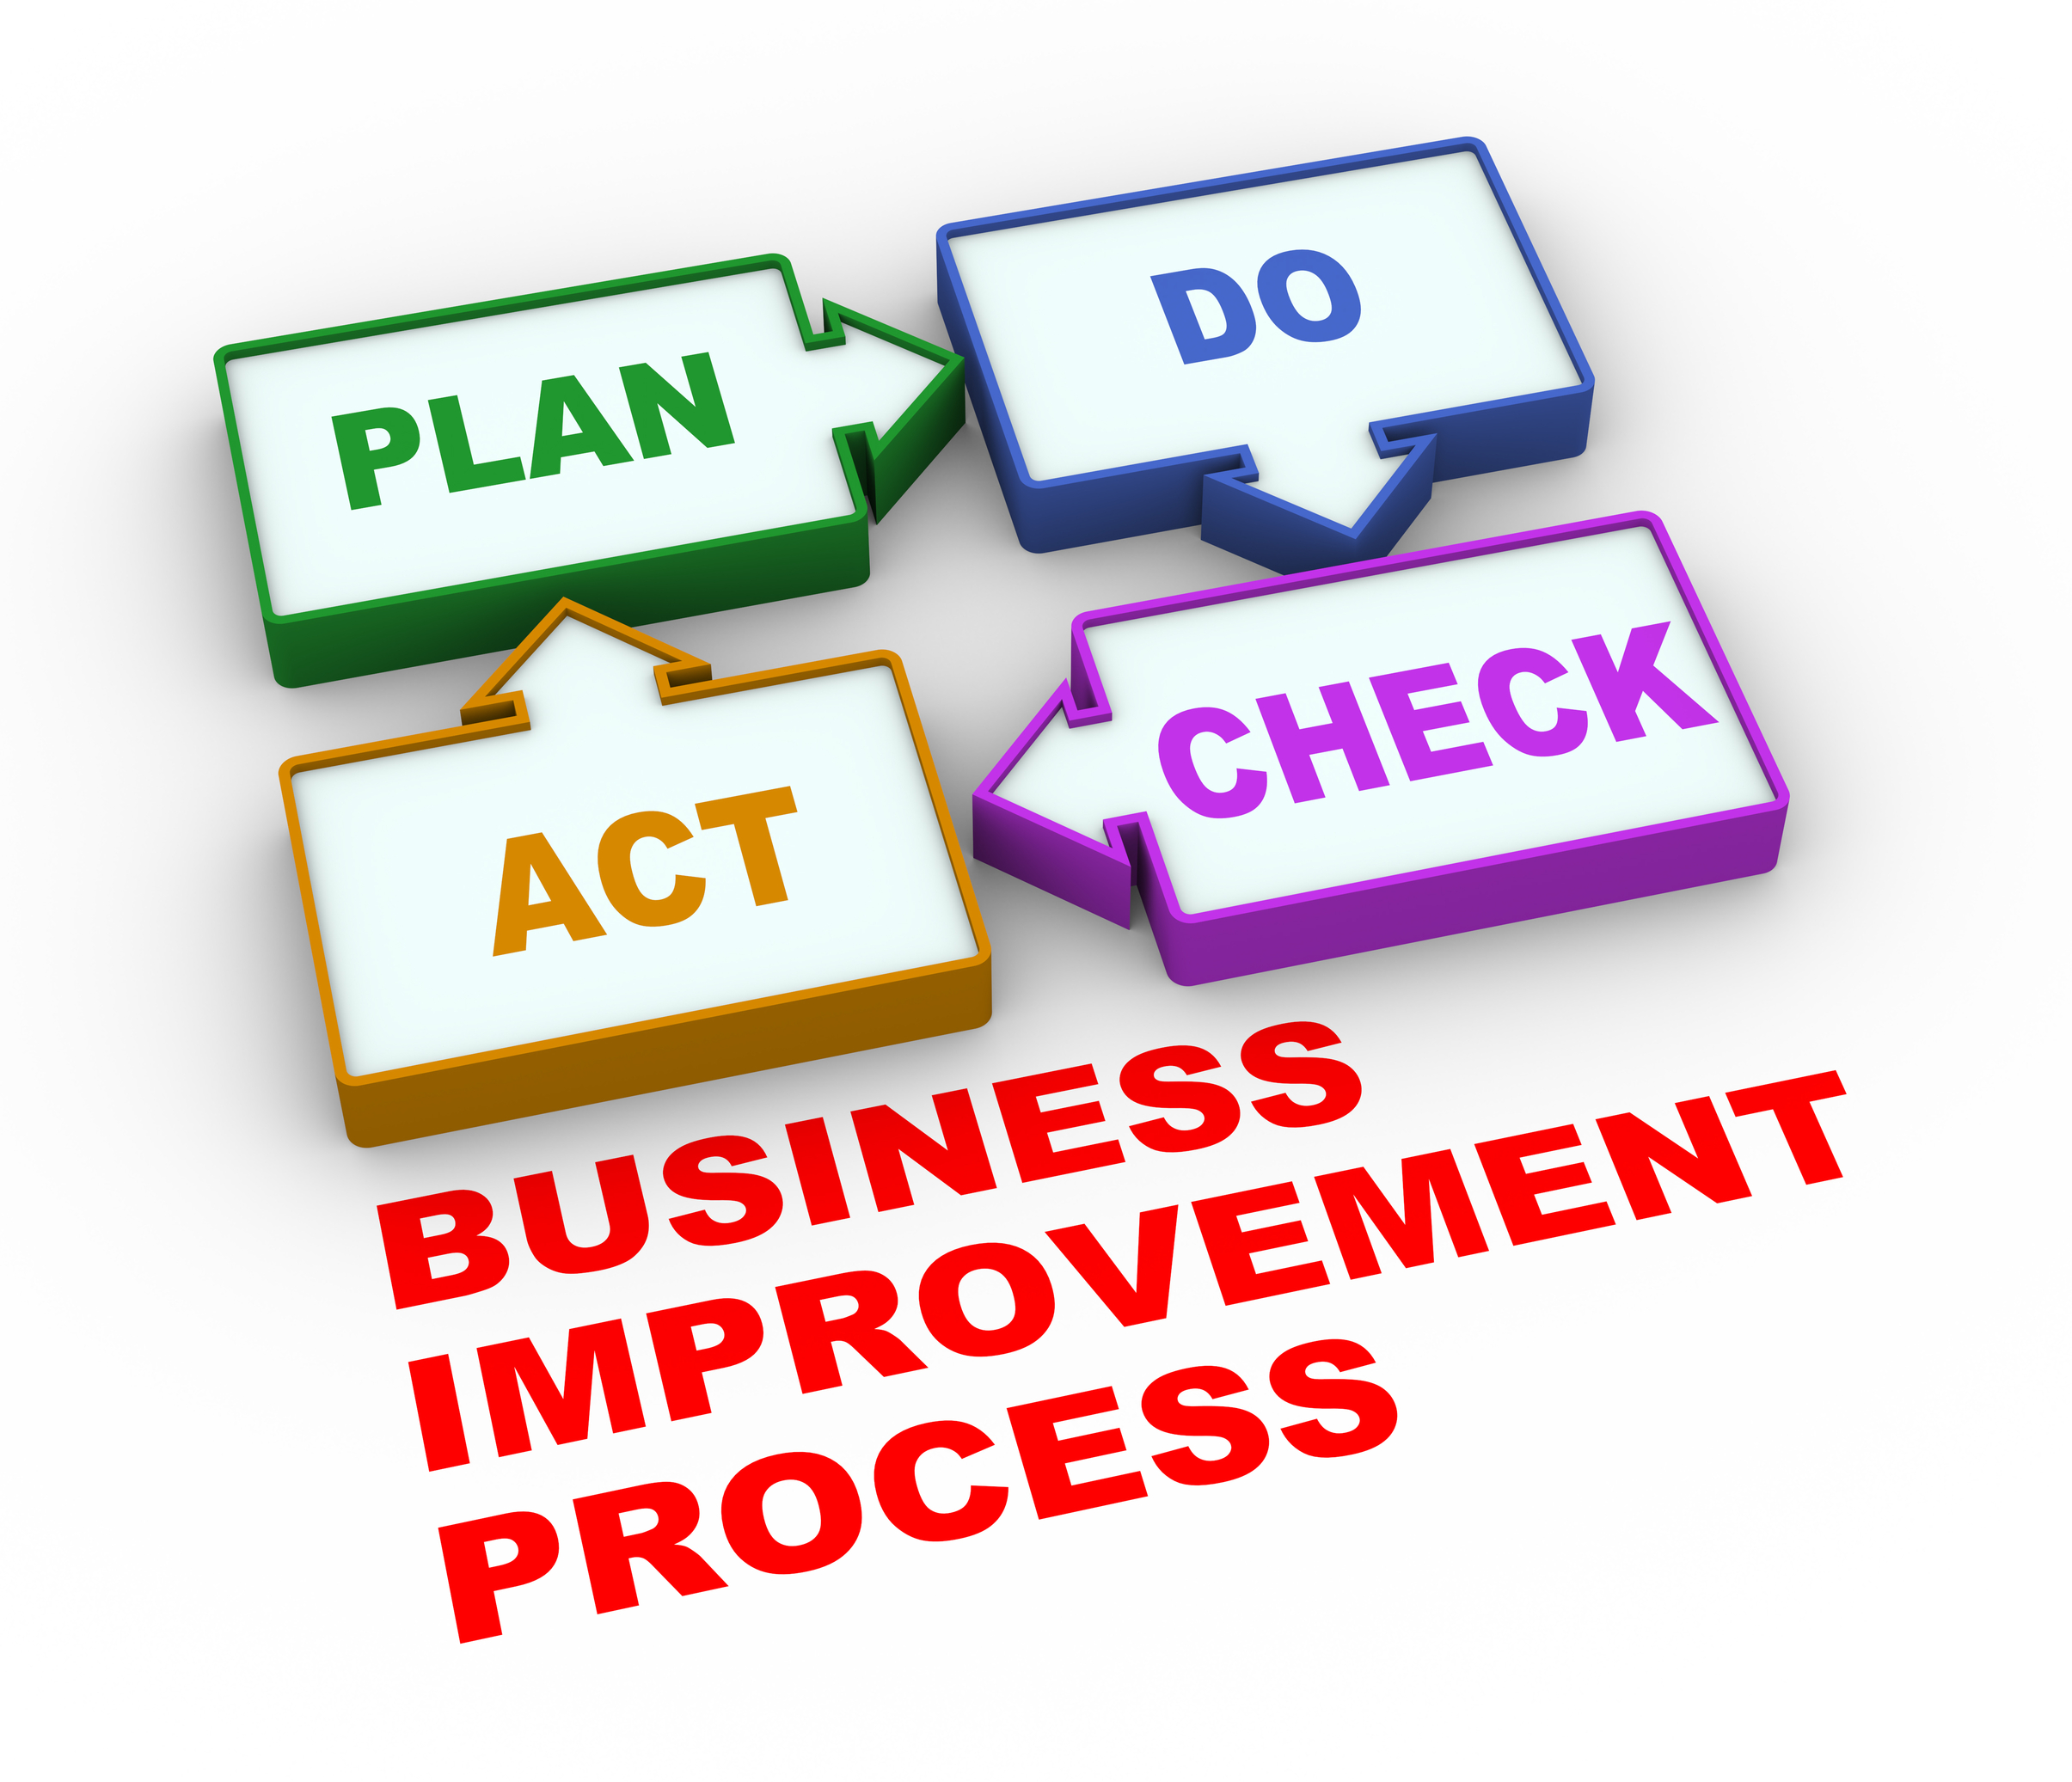 We can show you how to use this cycle to improve your processes.